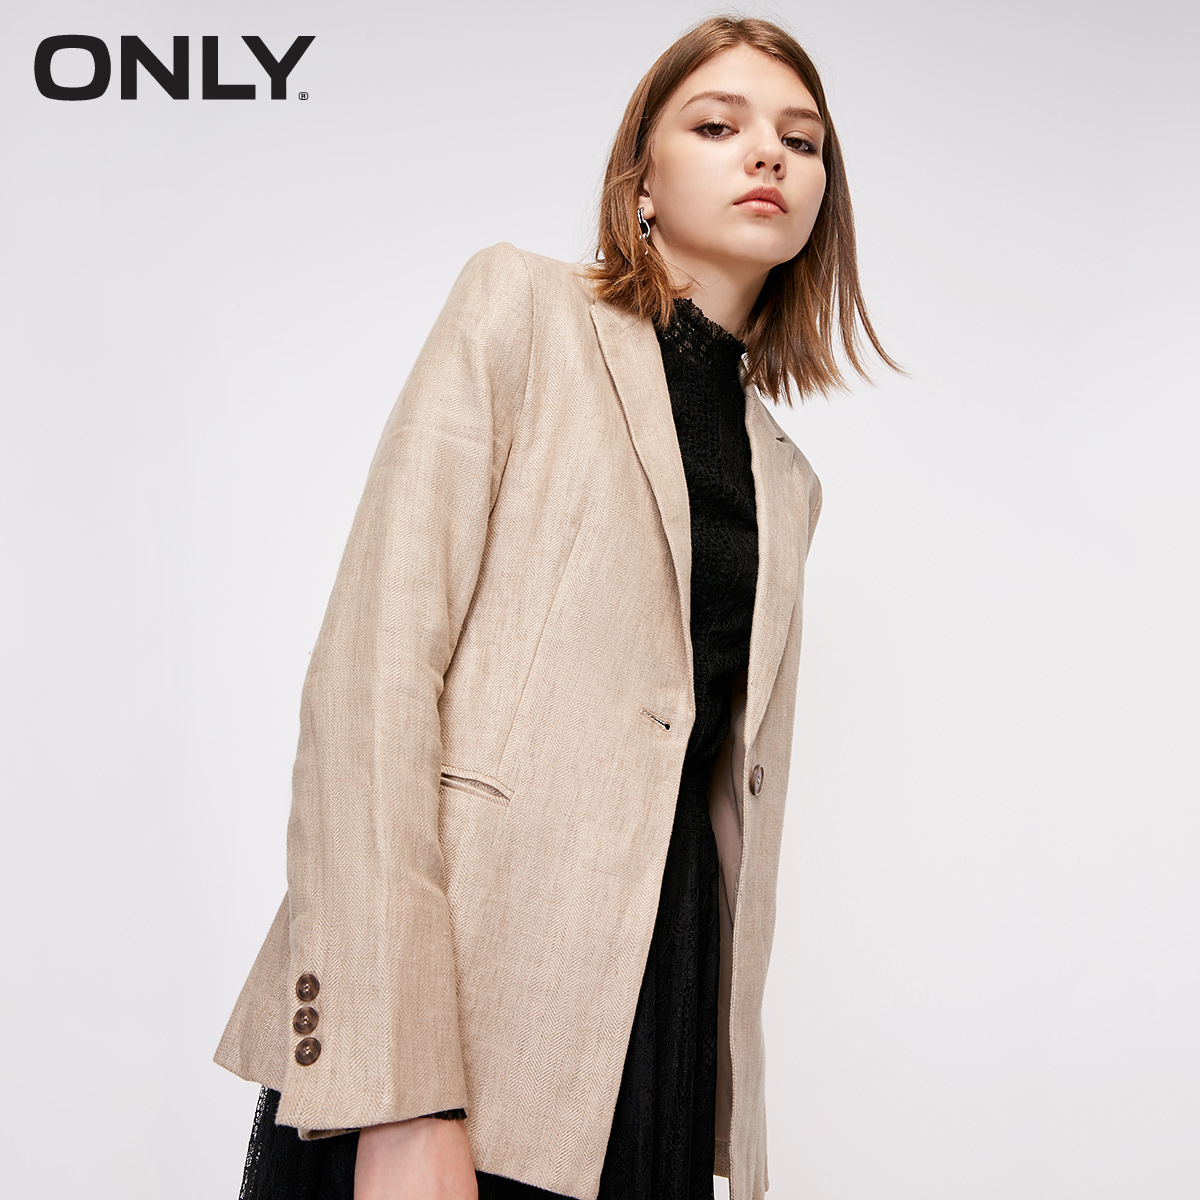 ONLY Summer New Chic Linen Slim Thin Casual Suit Jacket Women  |   118308524